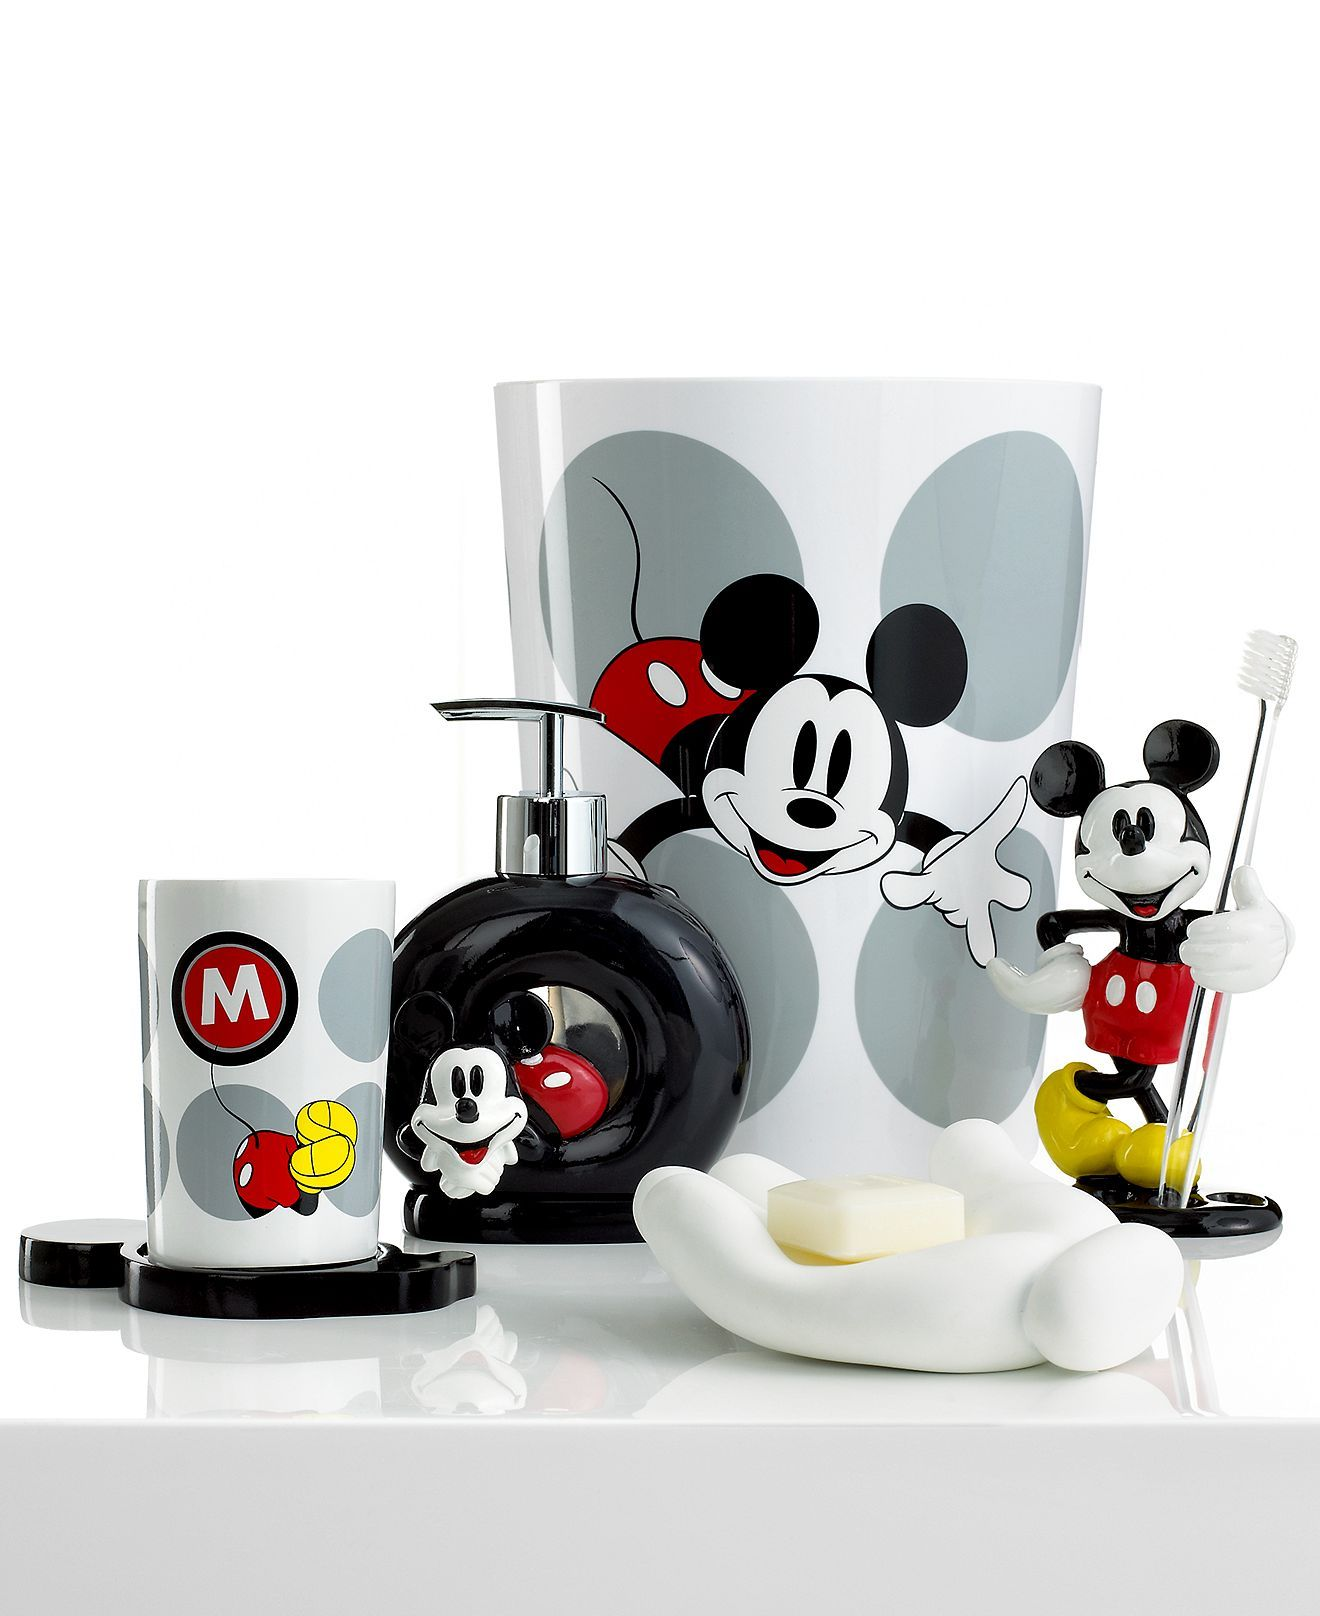 Genial Disney Bath Accessories, Disney Mickey Mouse Bath Accessories   Guest  Bathroom